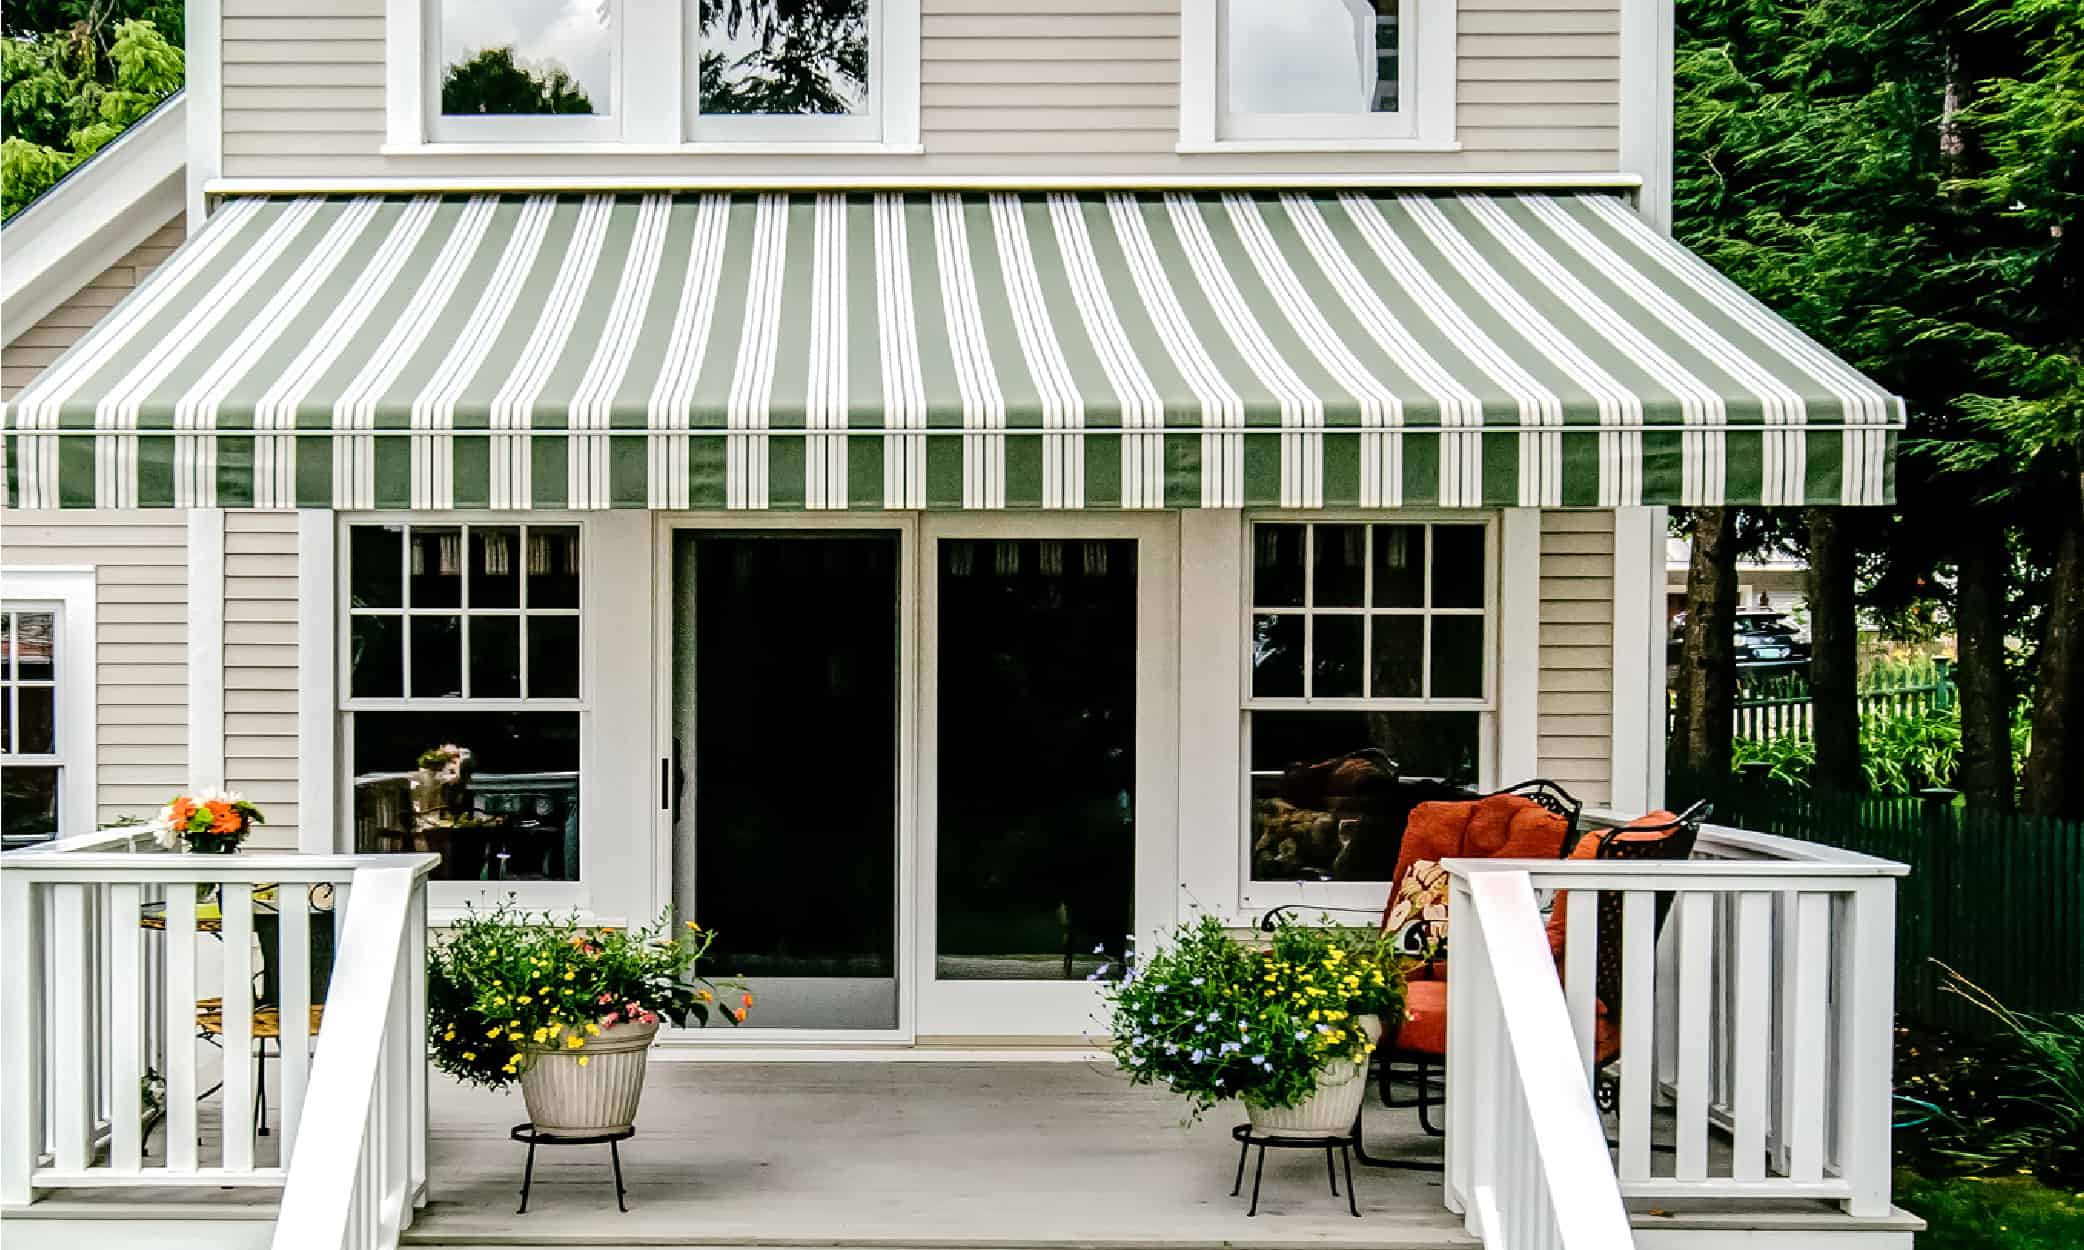 Retractable Awnings Vermont|VT Retractable Patio Awnings ...